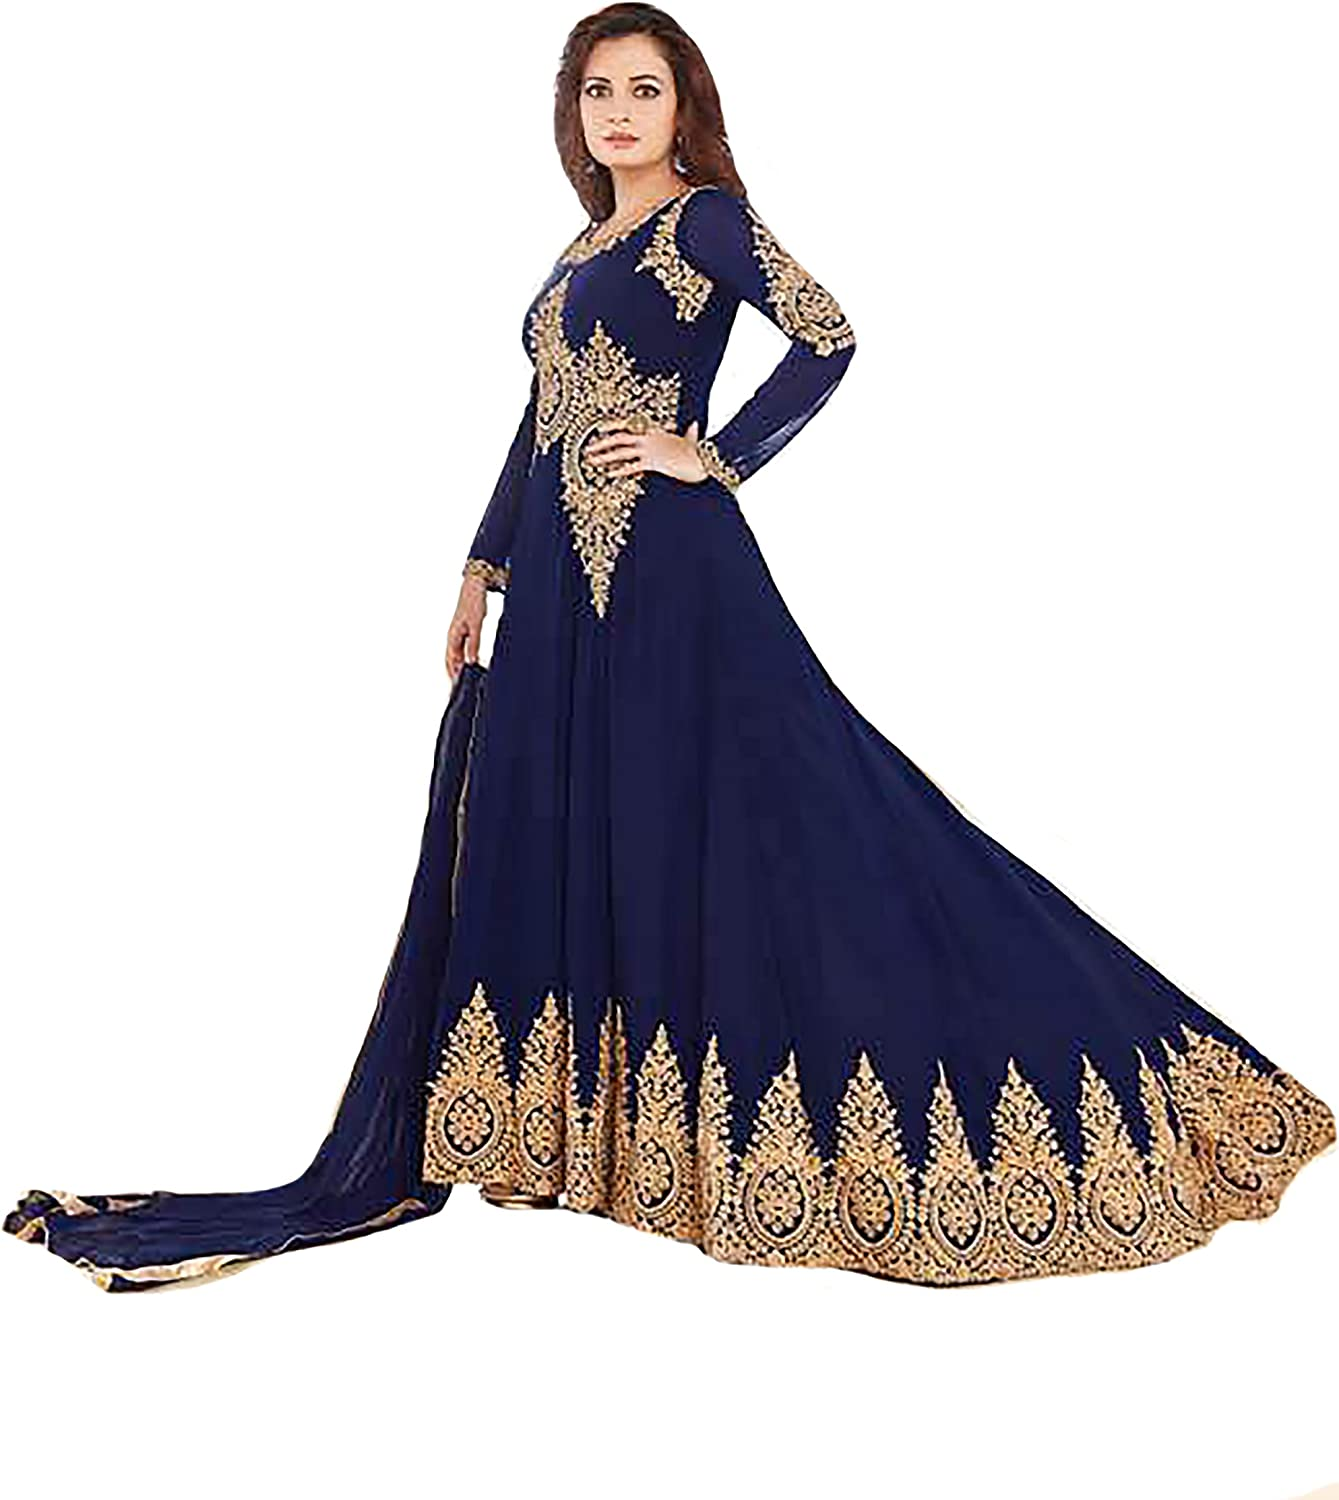 Eid New Launched Hijab Kaftan Collection Anarkali Shalwar Suit Ceremony Muslim 9308